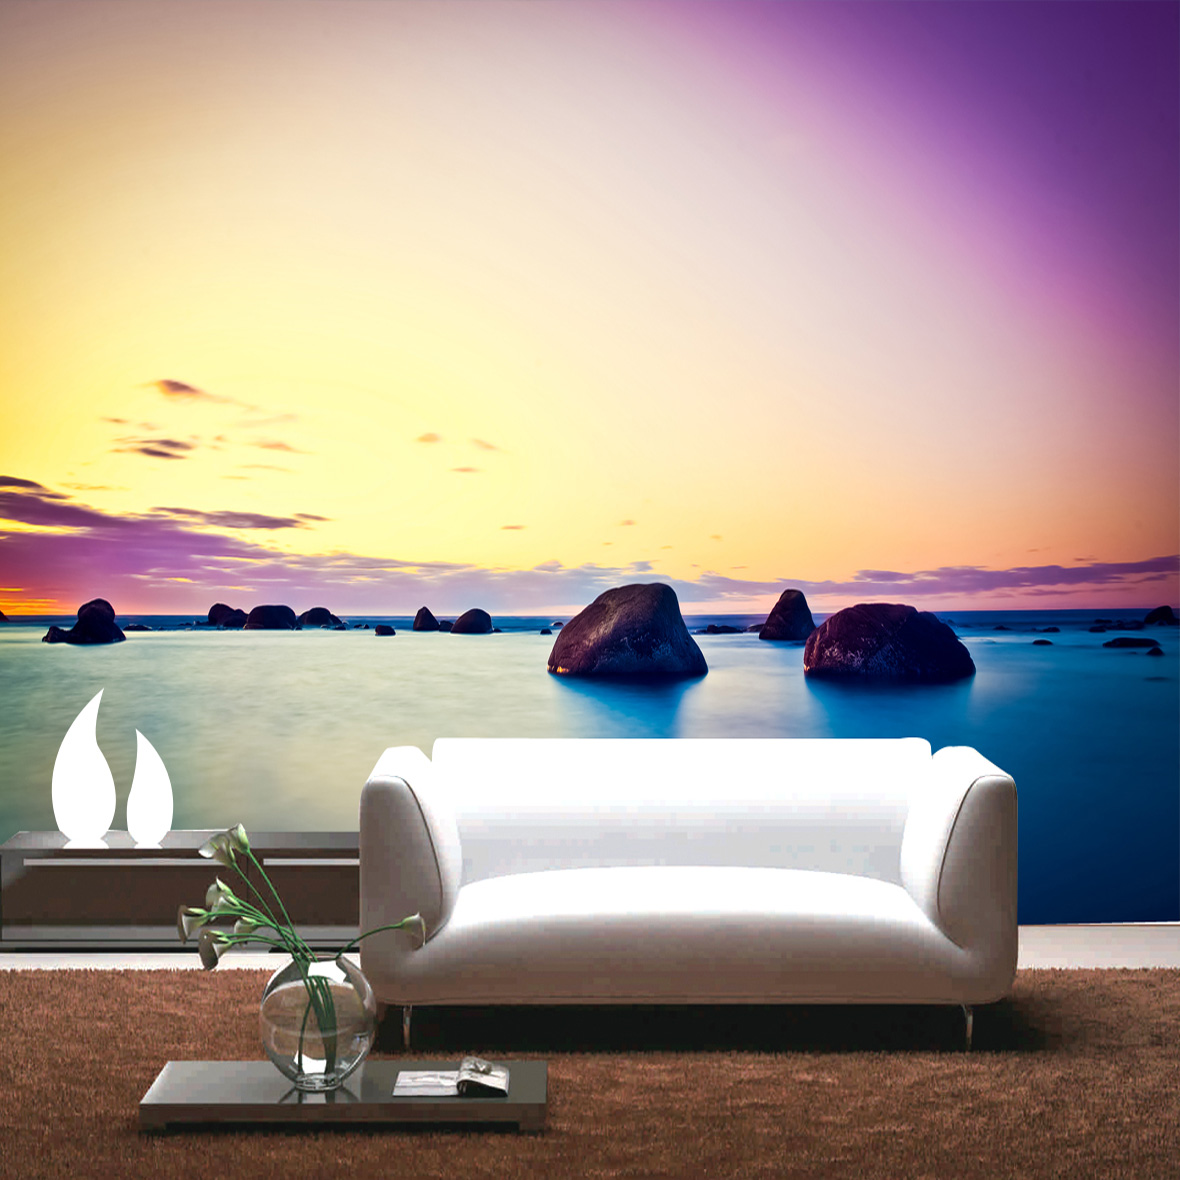 3d stereoscopic large mural custom wall paper fabric living room sofa bedroom TV background wallpaper ocean scenery sky color custom photo wallpaper 3d stereoscopic cave seascape sunrise tv background modern mural wallpaper living room bedroom wall art